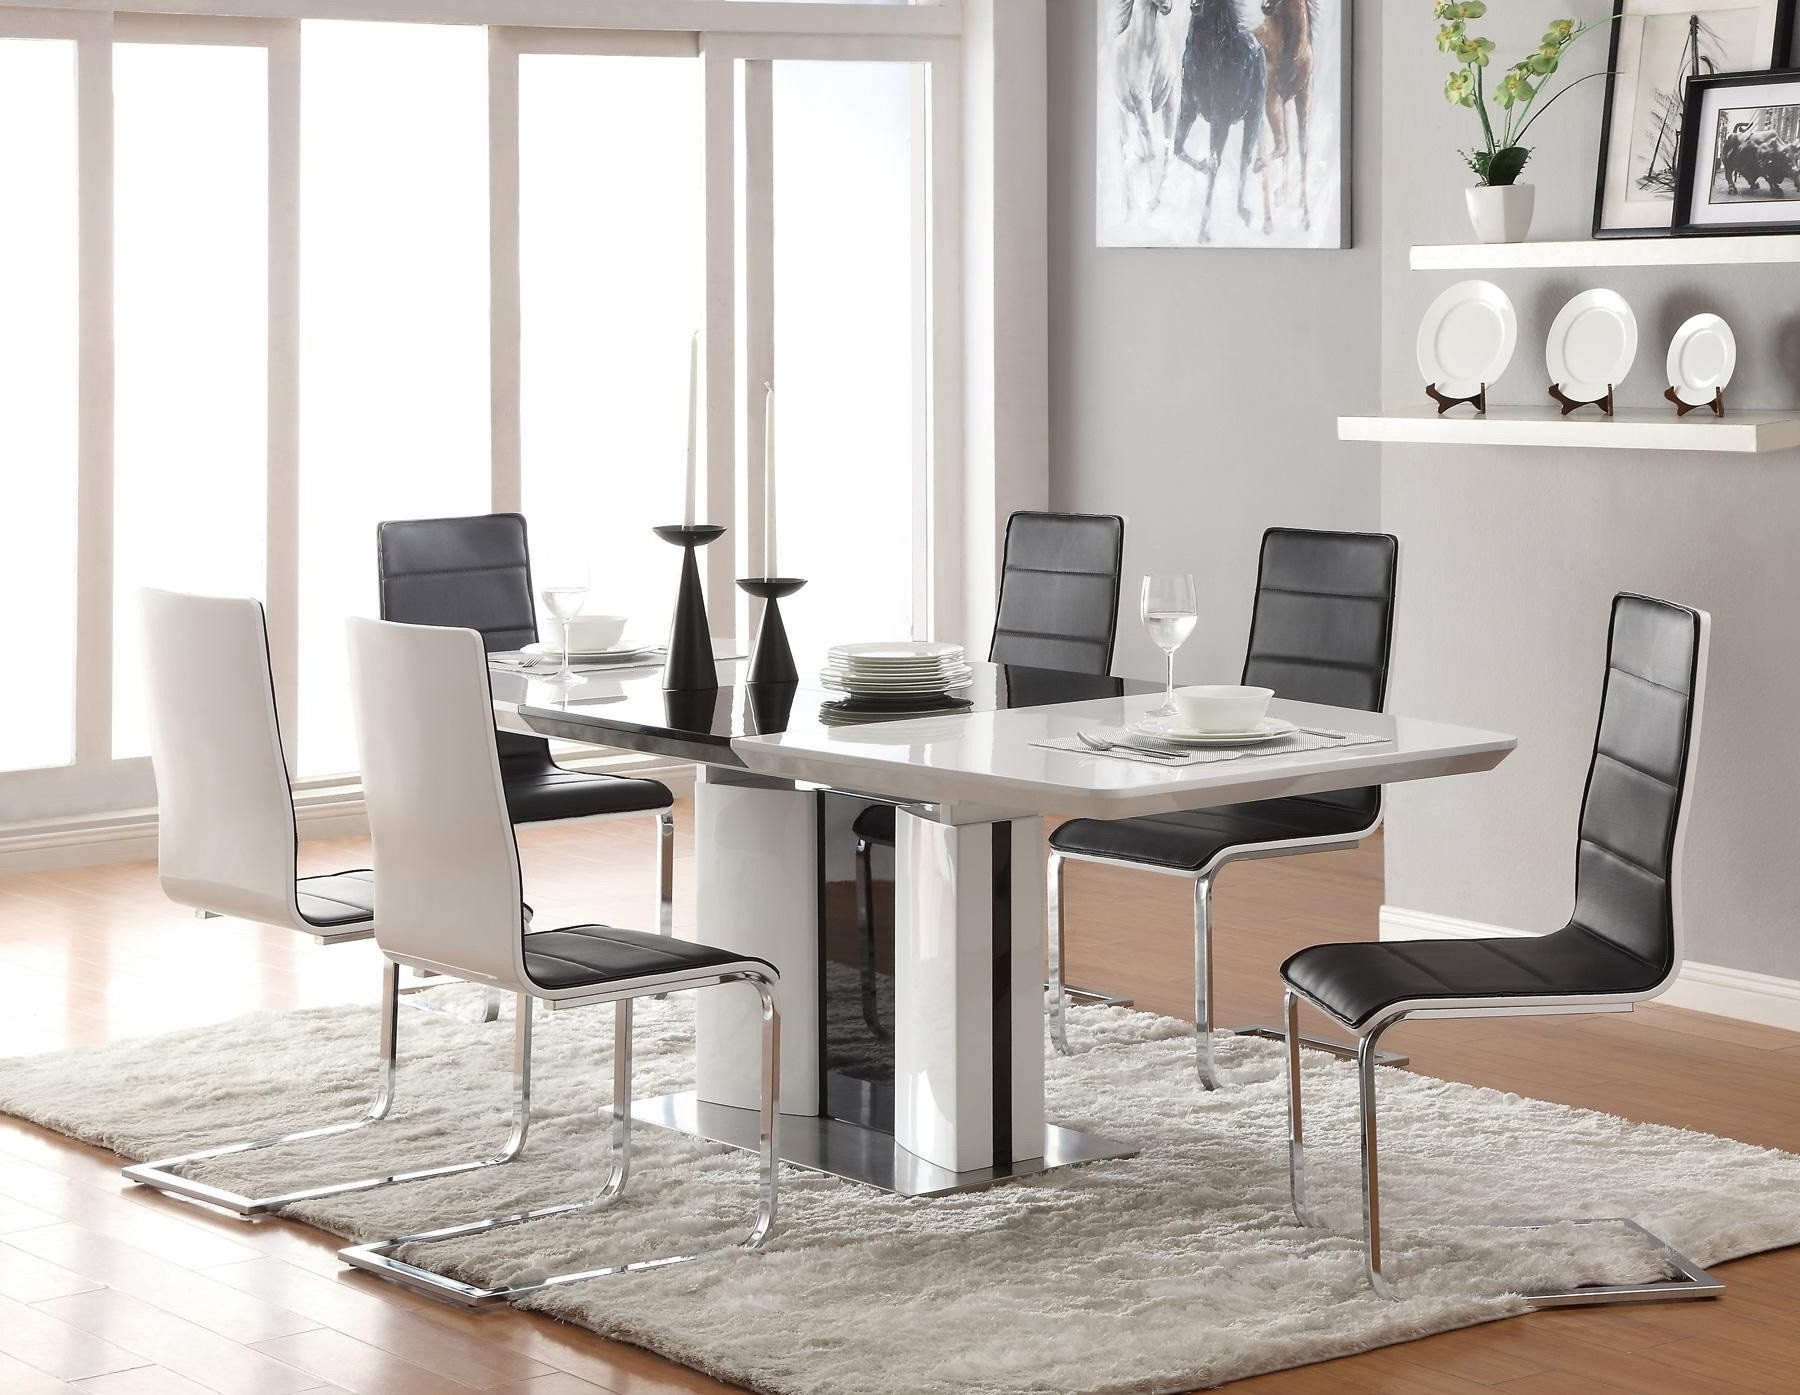 2018 Contemporary Dining Tables Sets With Regard To Modern Italian Dining Room Furniture Sets With Black And White (View 8 of 25)